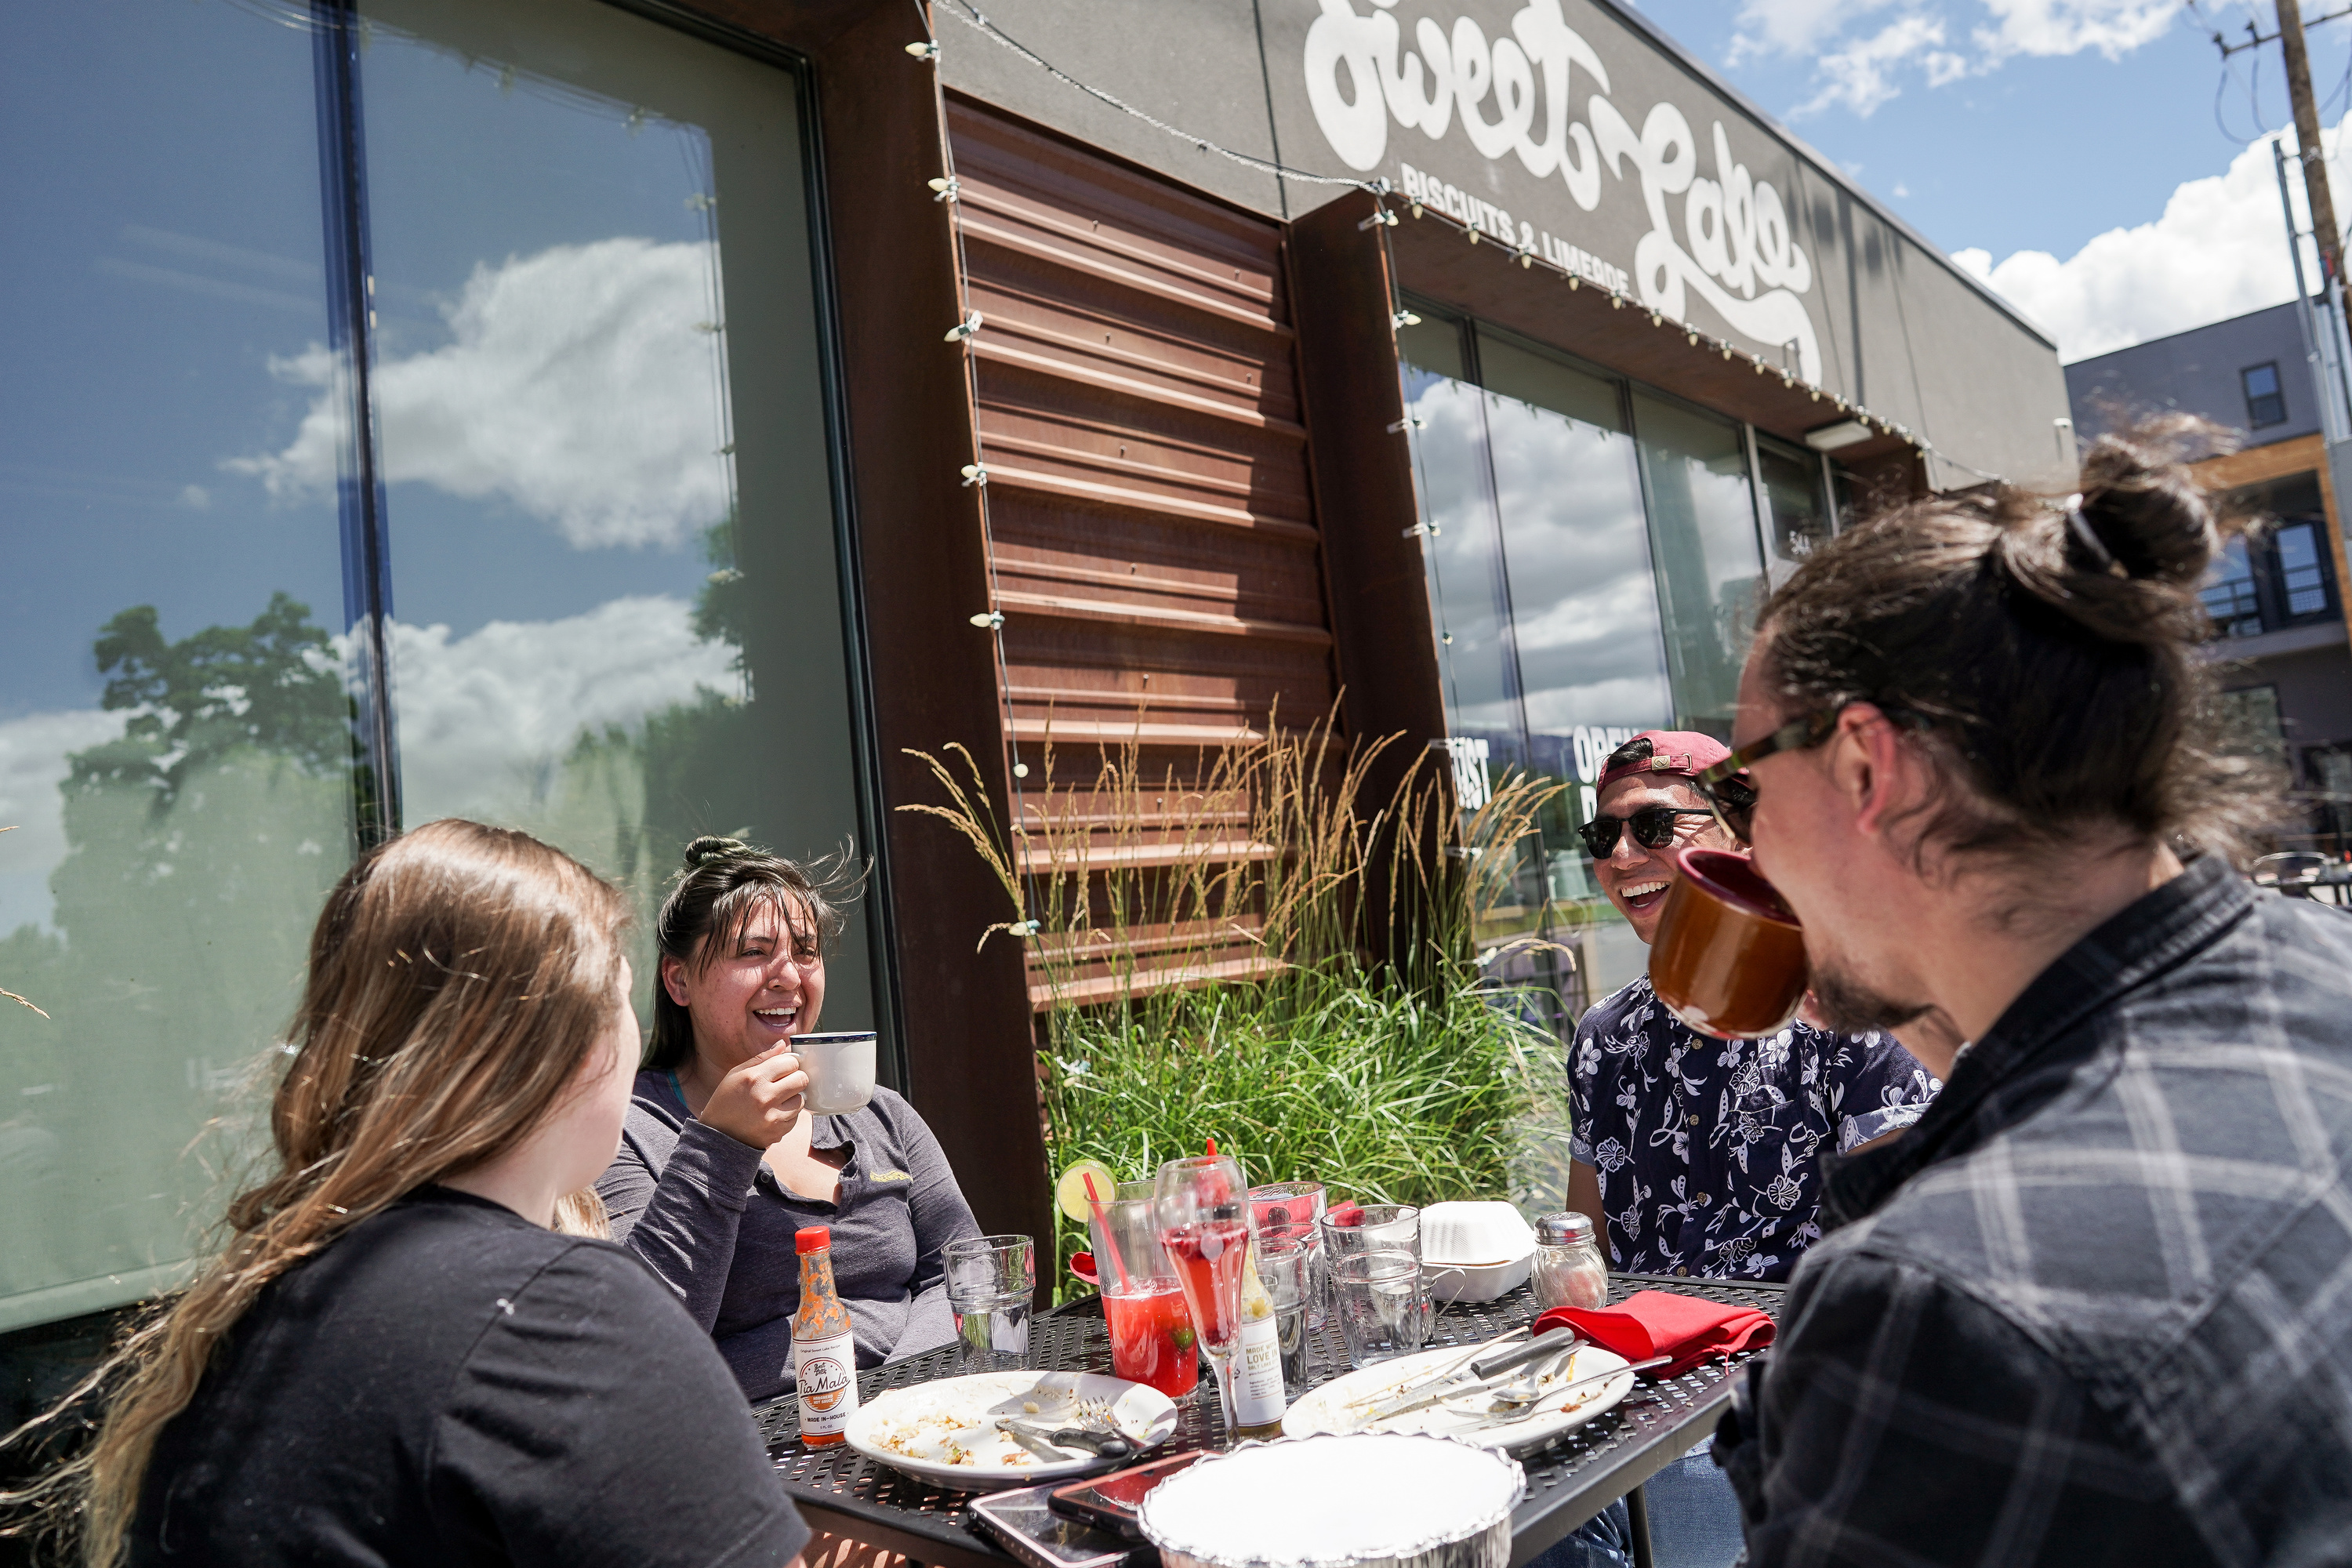 Trae Groshong, Mari Mosqueda, Erick Pablo and Auston Garcich, left to right, chat as they wrap up a meal at Sweet Lake Biscuits & Limeade in Salt Lake City on Wednesday, June 17, 2020.